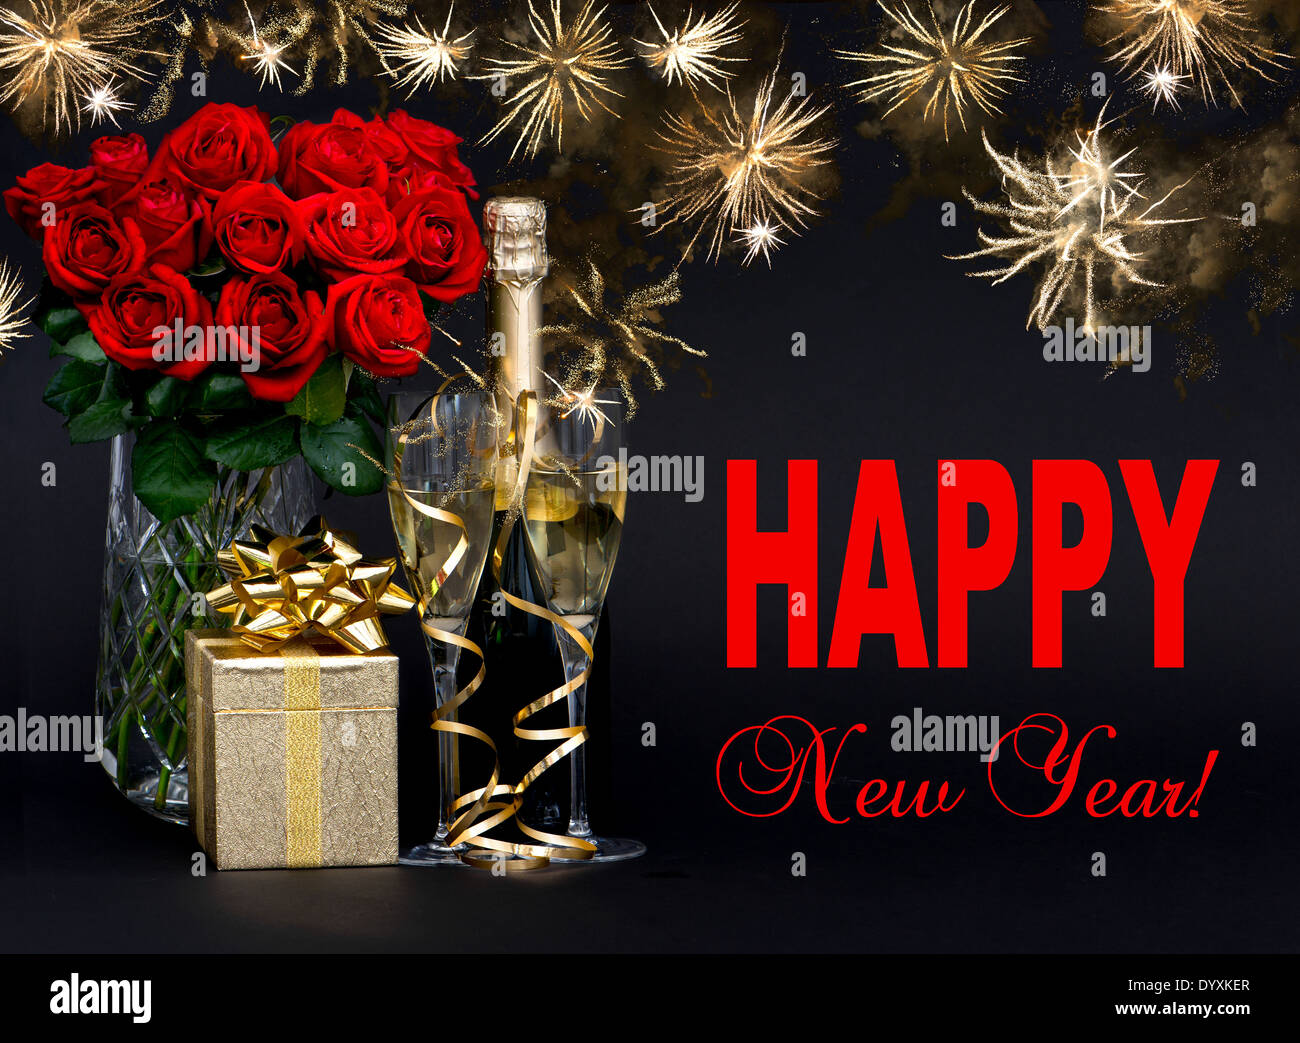 happy new year card concept red roses bottle of champagne golden gift with beautiful golden fireworks on black background